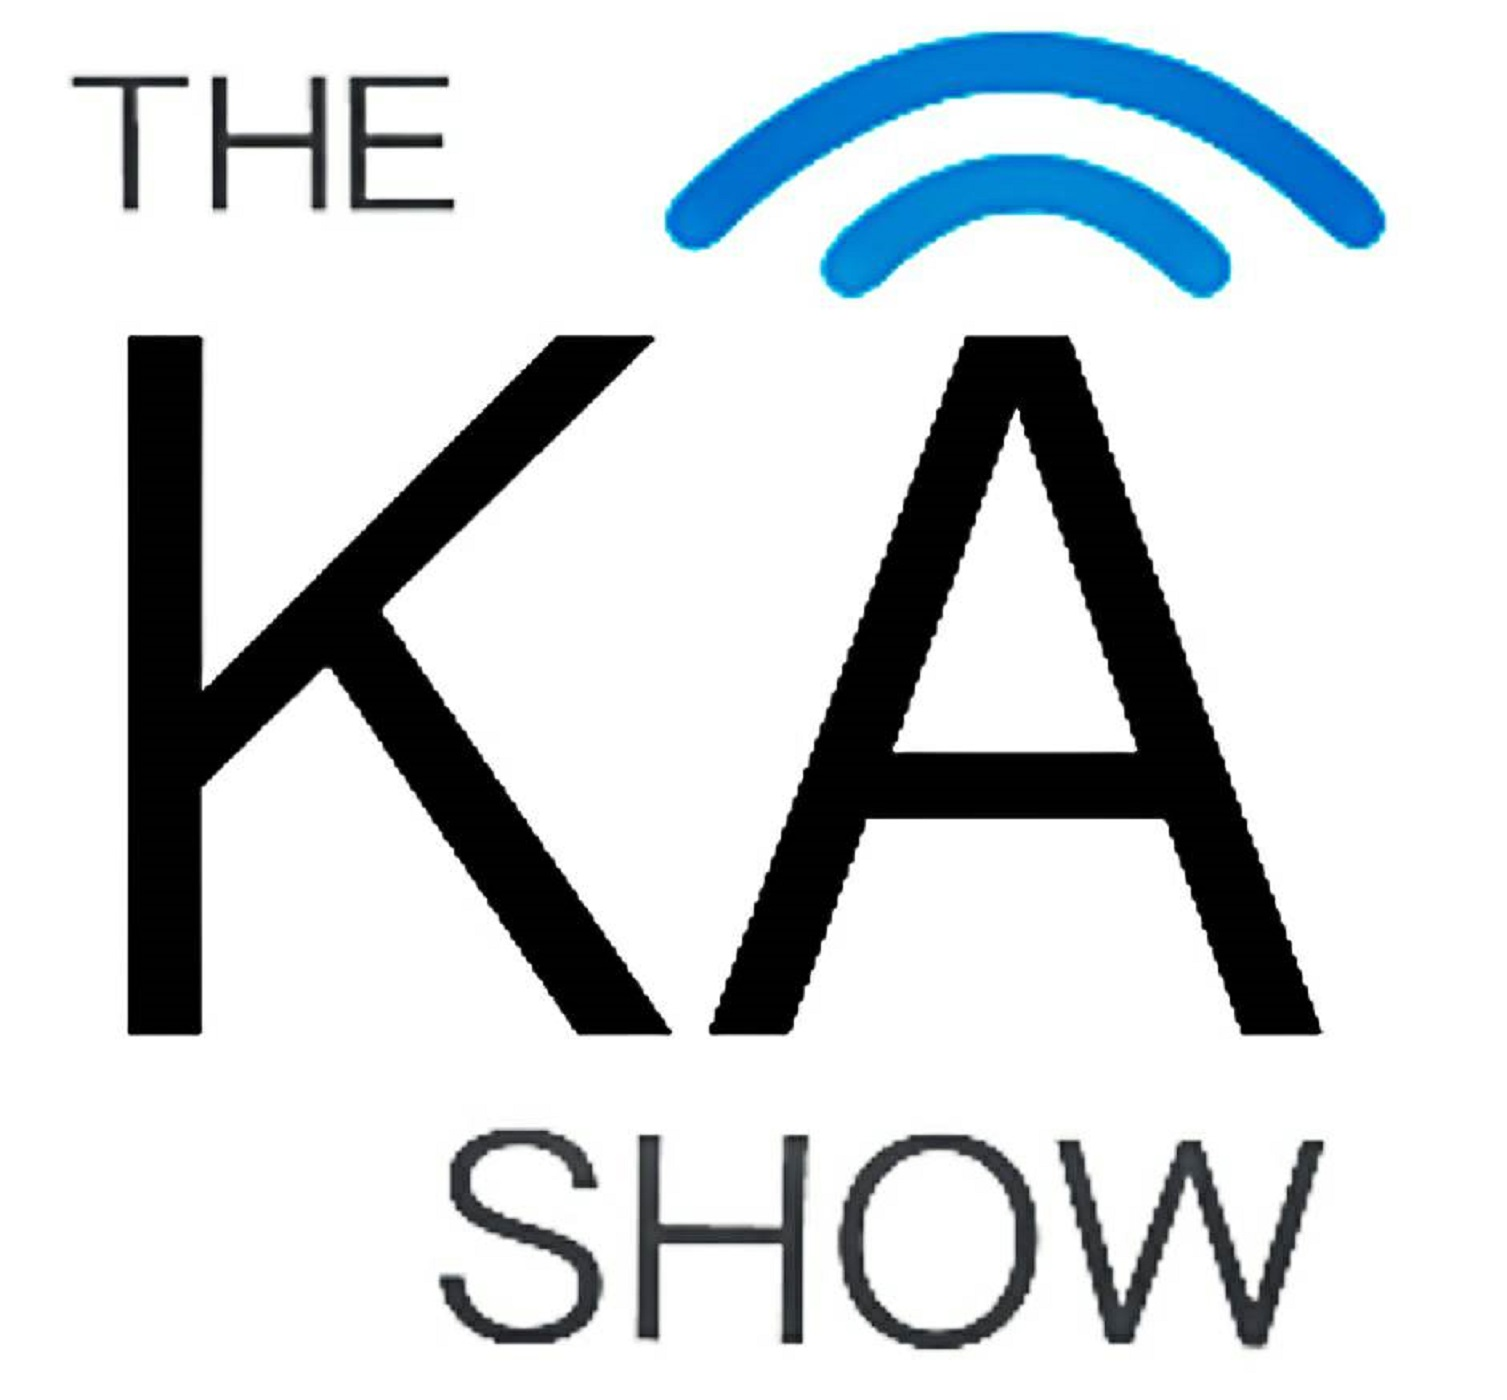 The Launch's Hill Kourkoutis on The Kelly Alexander Show